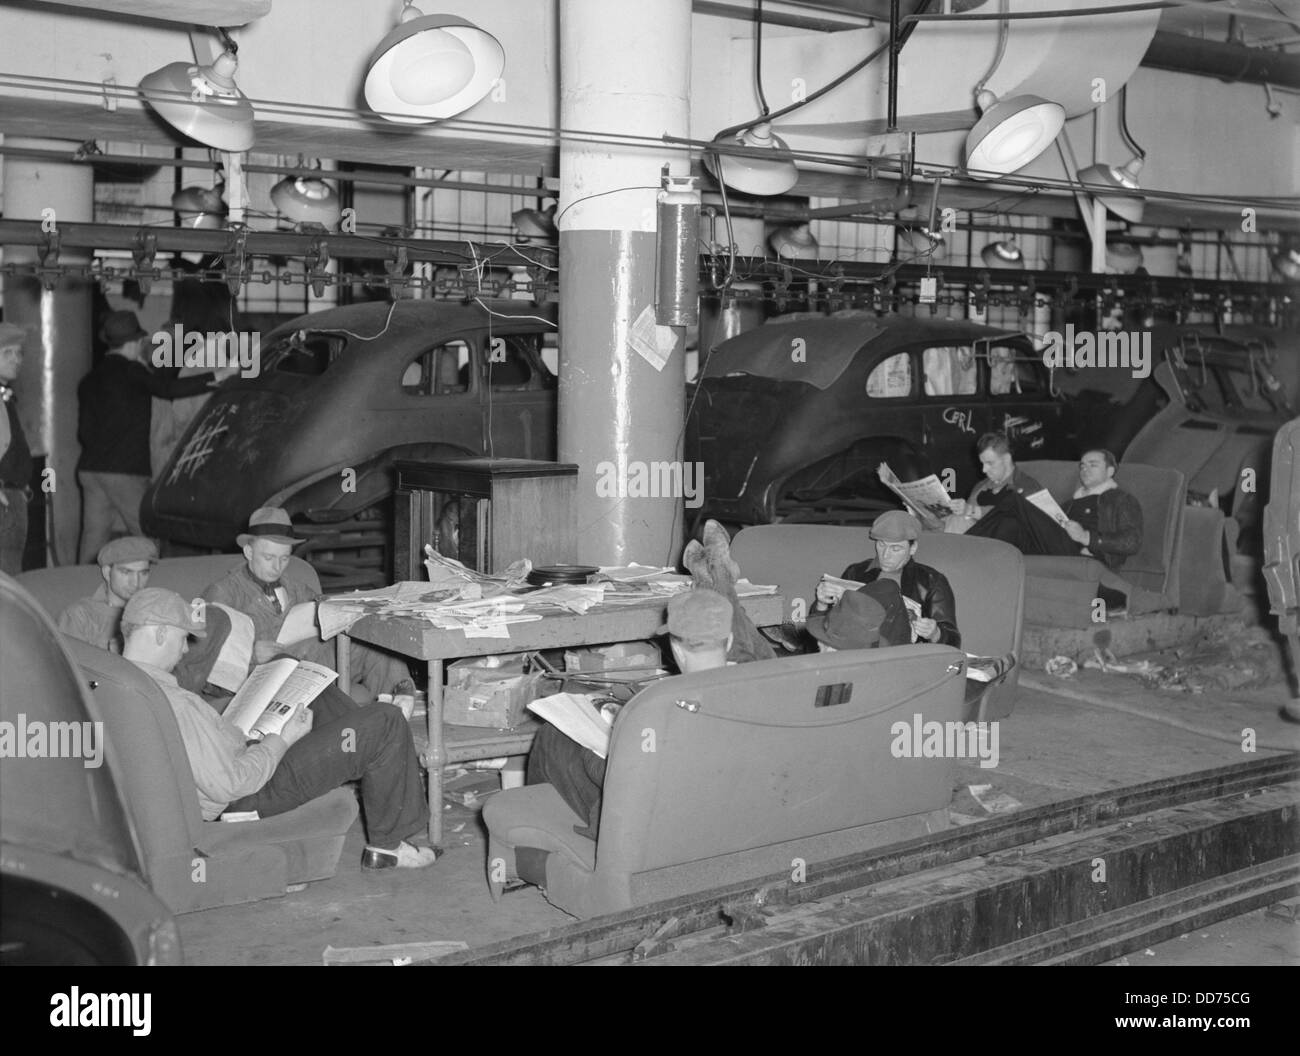 Sit-down strikers in the General Motors Fisher body factory #3 in Flint, Michigan. 1933. The United Automobile Workers - Stock Image